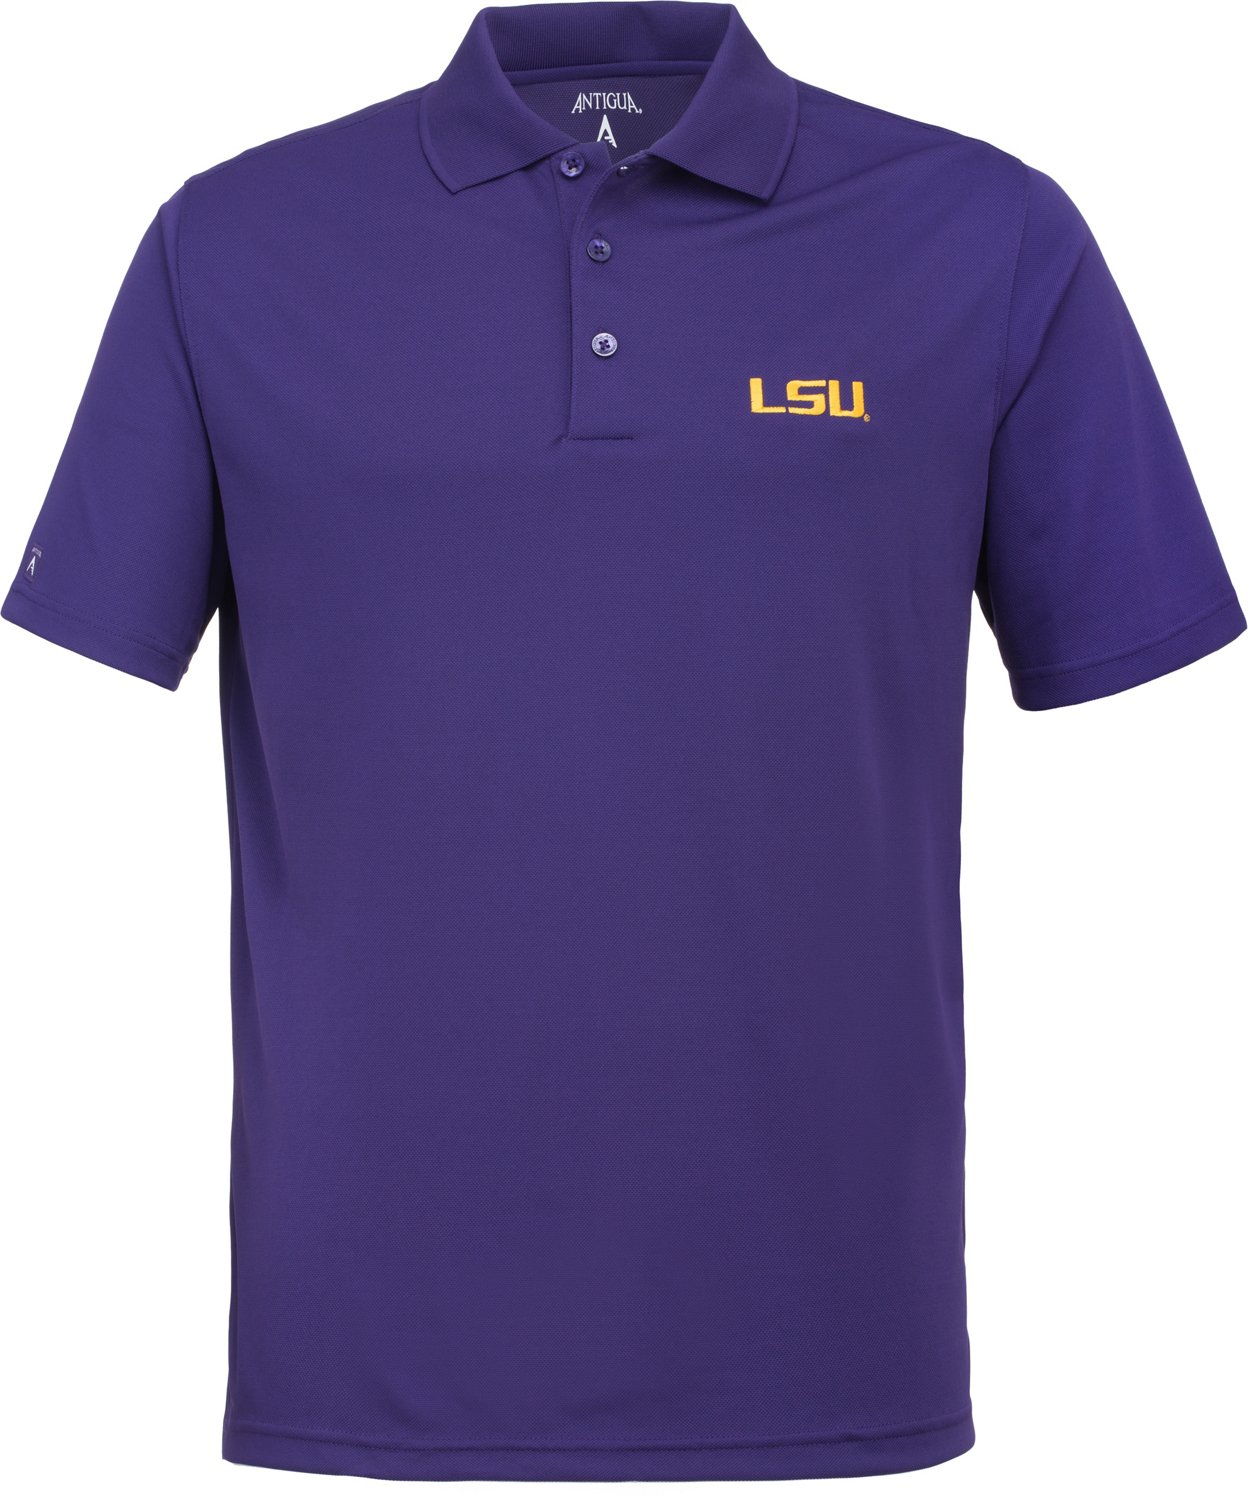 Display product reviews for Antigua Men s Louisiana State University  Xtra-Lite Polo Shirt 0e5d1944f